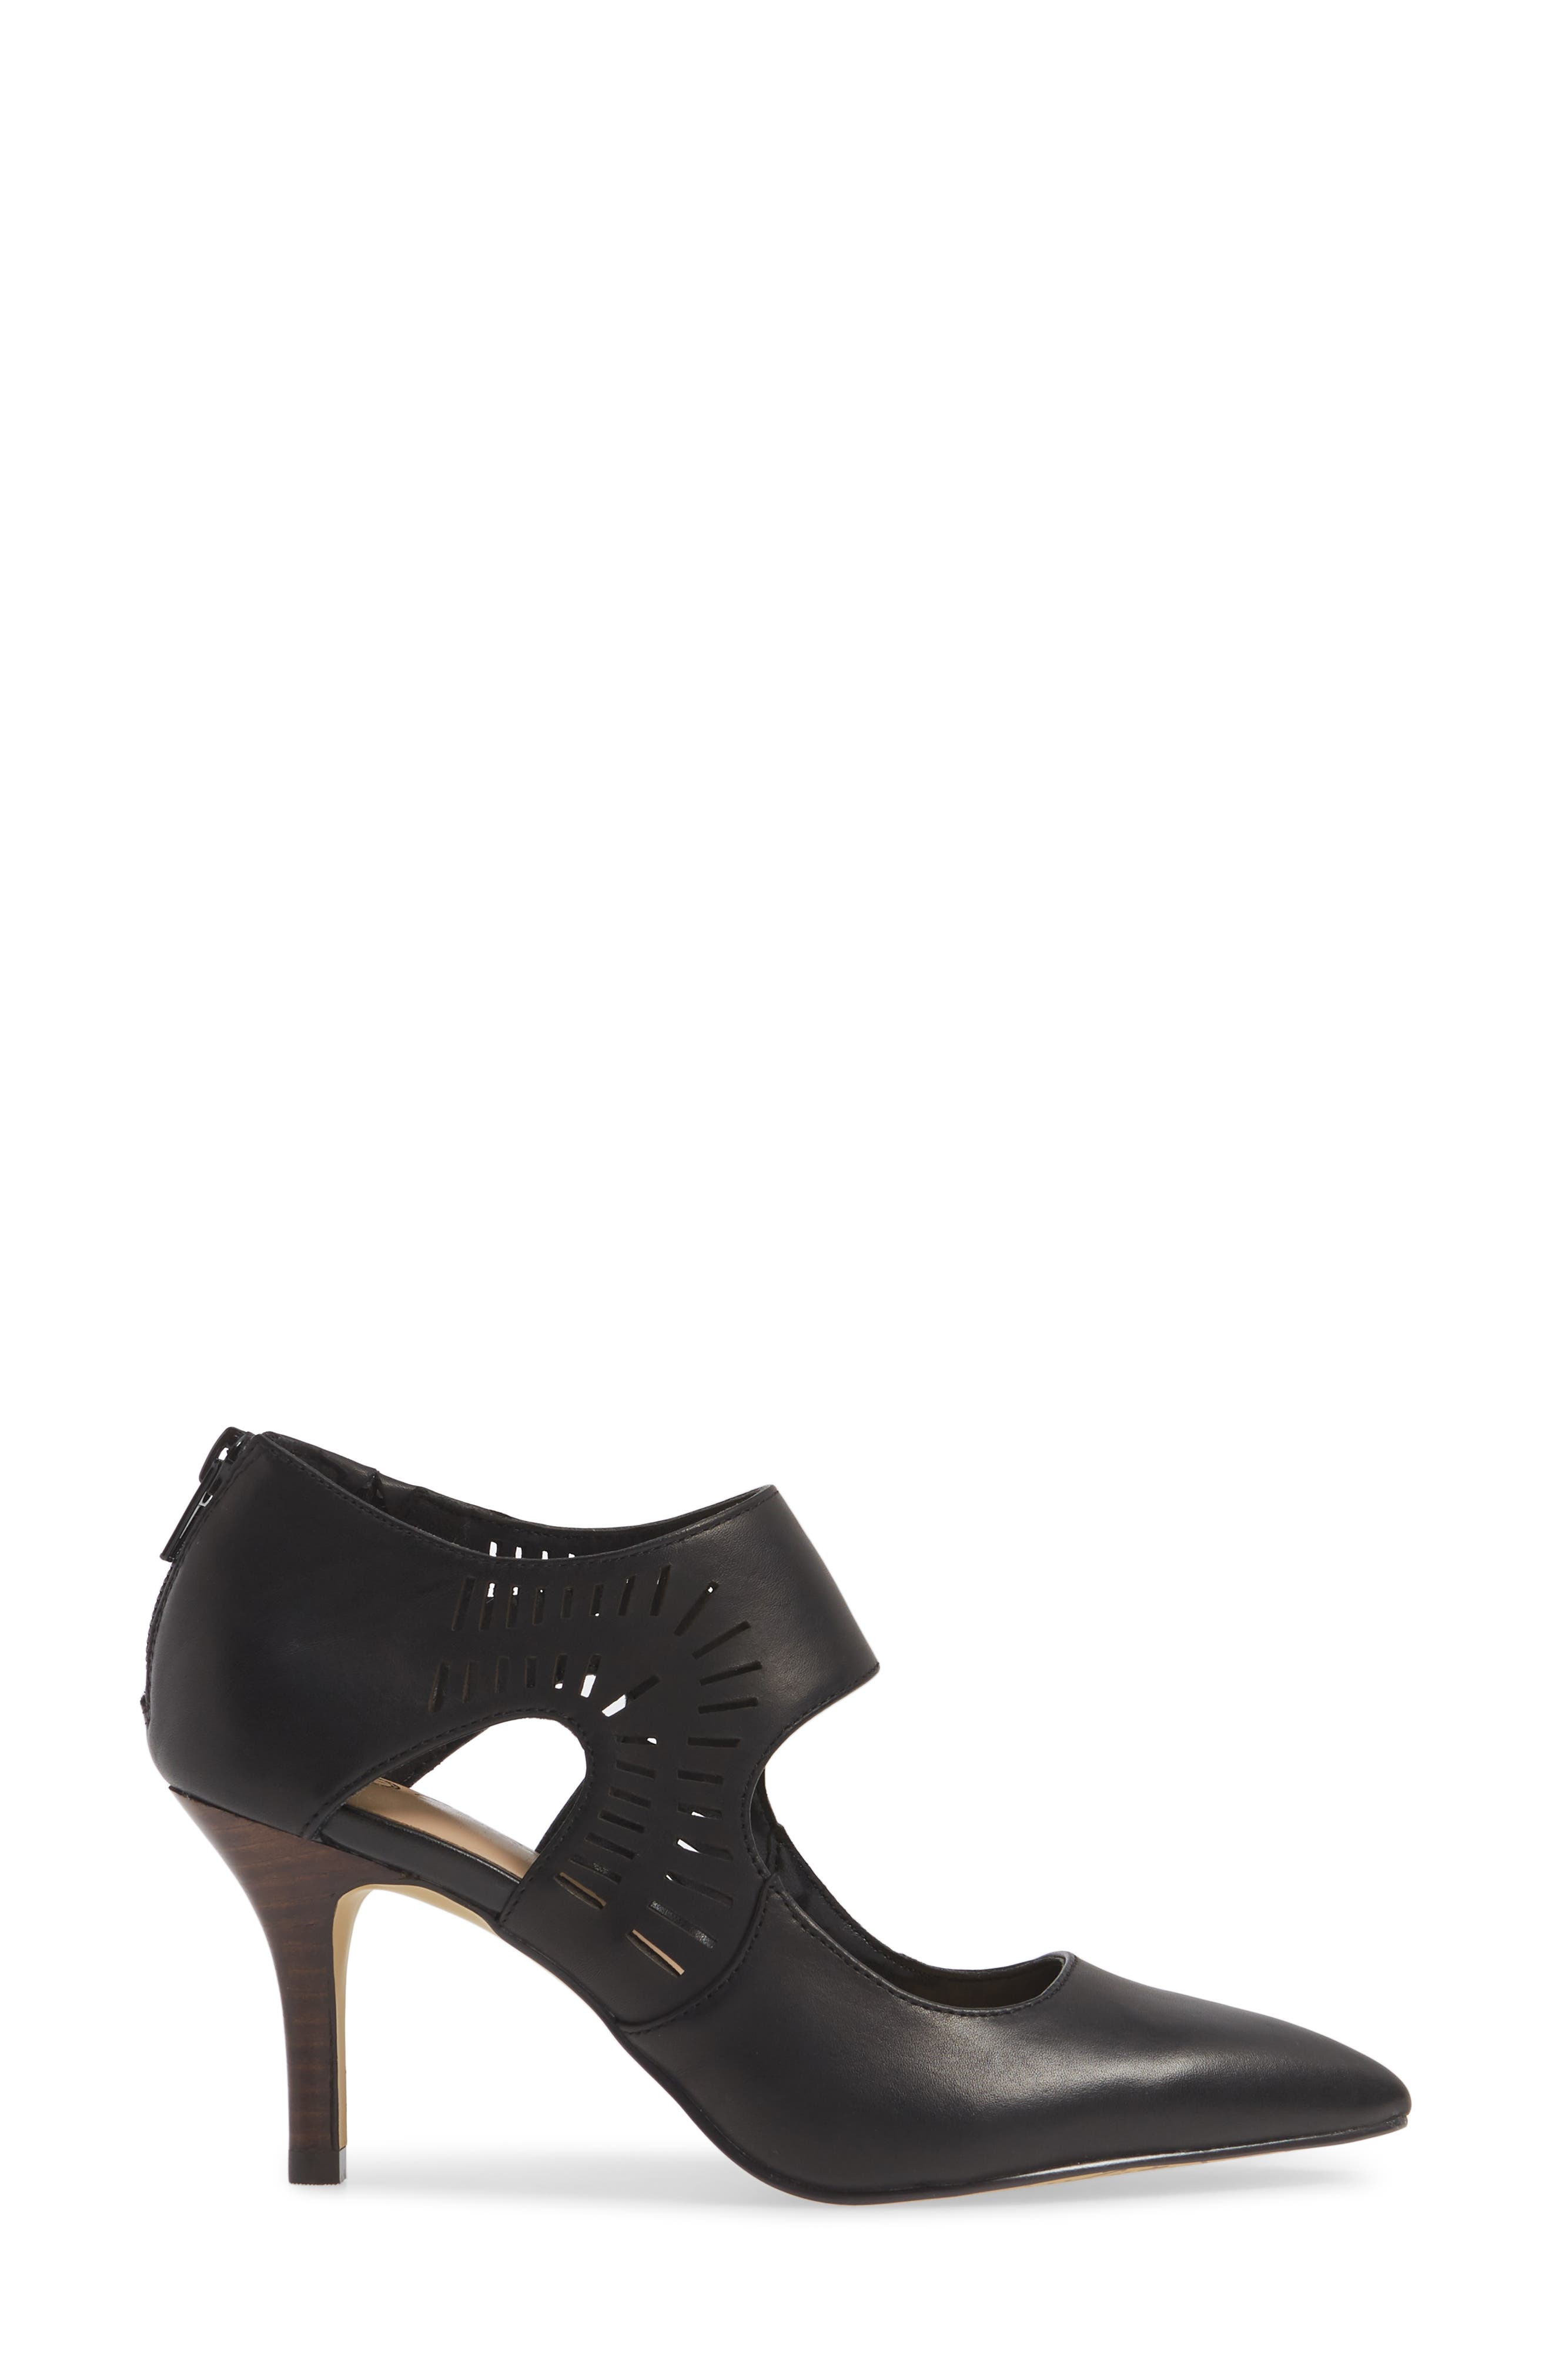 BELLA VITA, Dani Perforated Pump, Alternate thumbnail 3, color, BLACK LEATHER